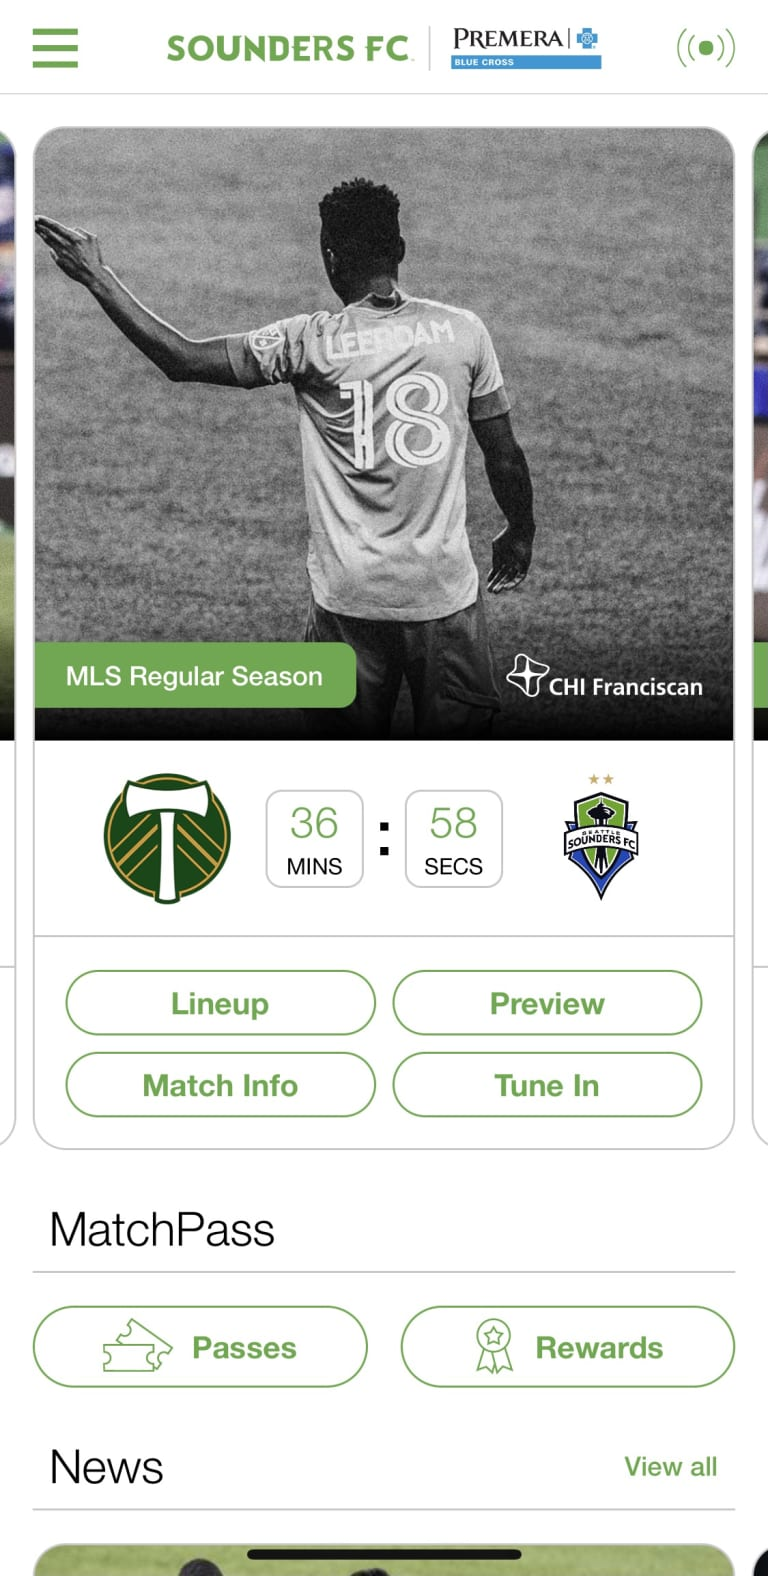 How to watch Sounders FC matches on Prime Video -